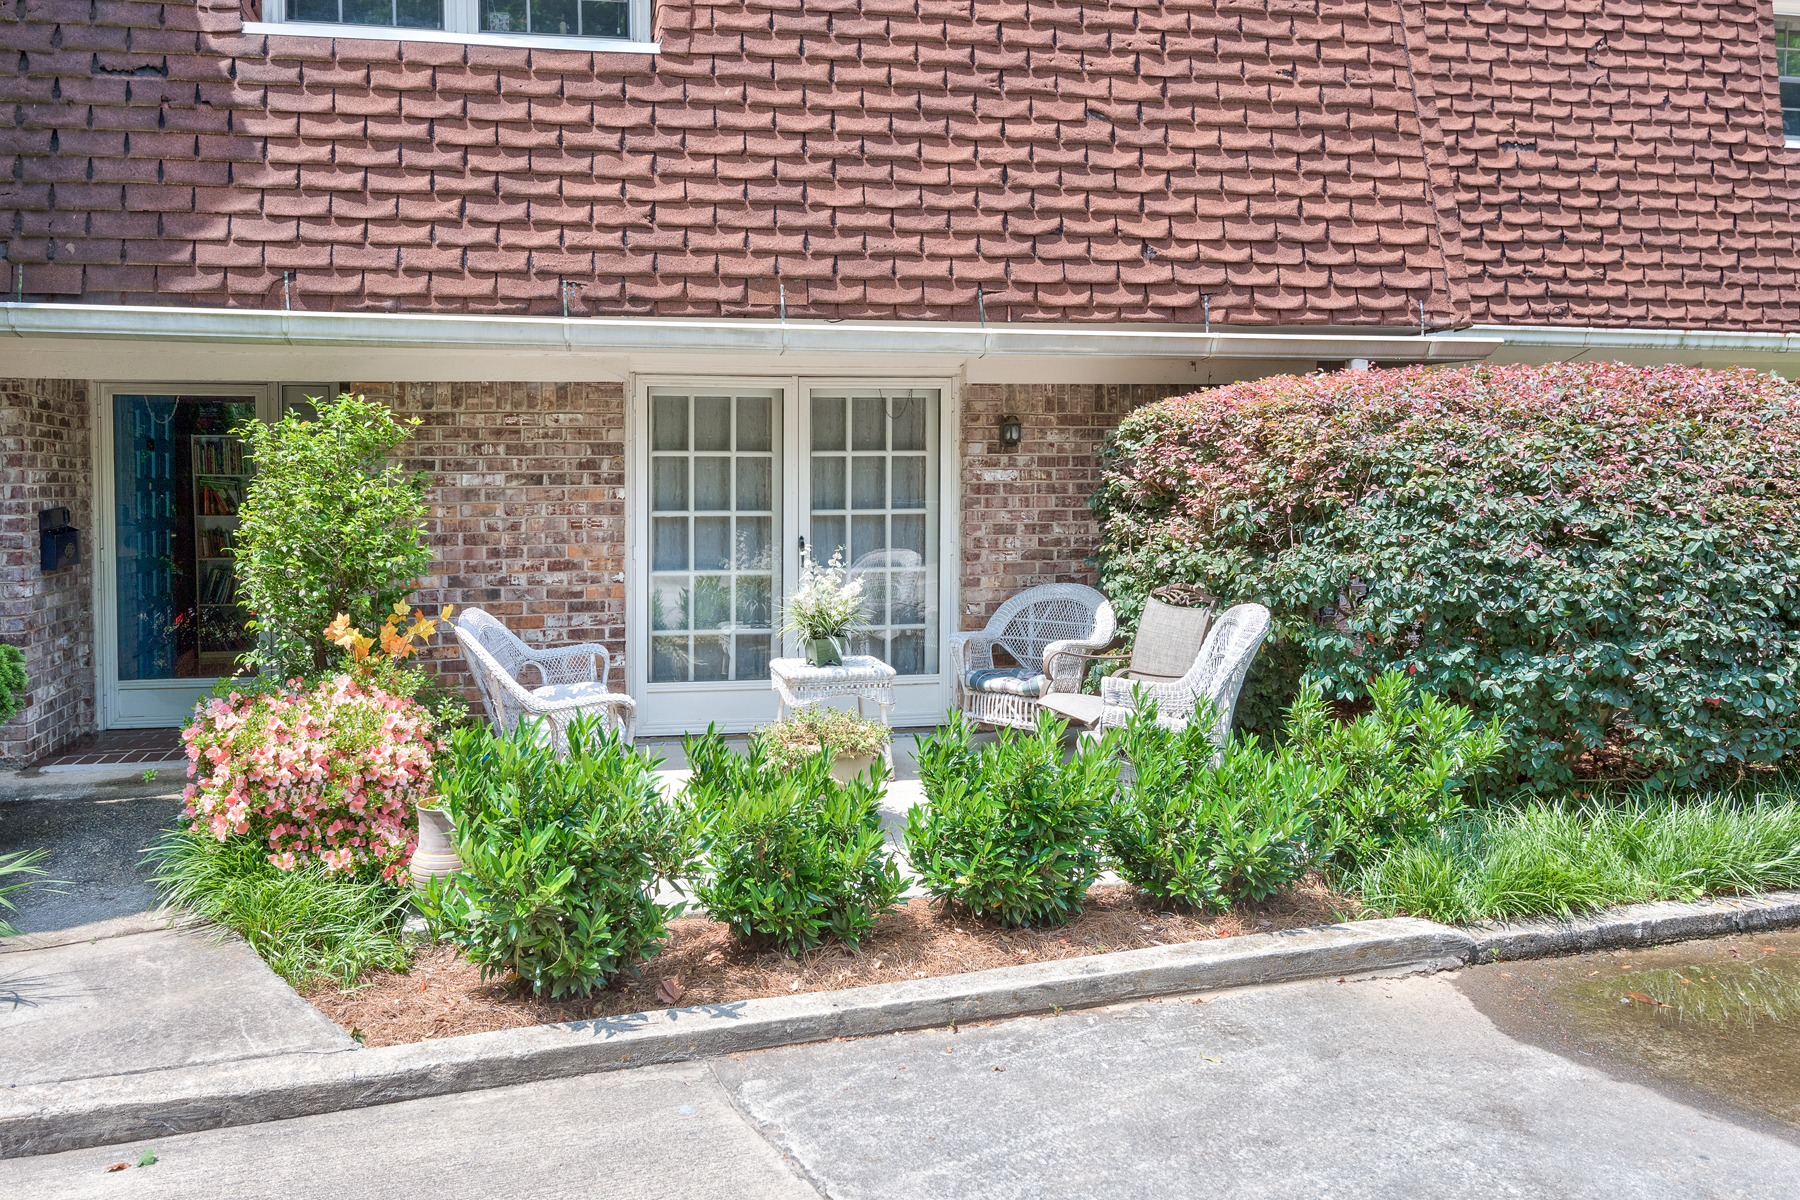 Townhouse for Sale at Excellent Value Intown 1154 Hampton Way NE Atlanta, Georgia 30324 United States